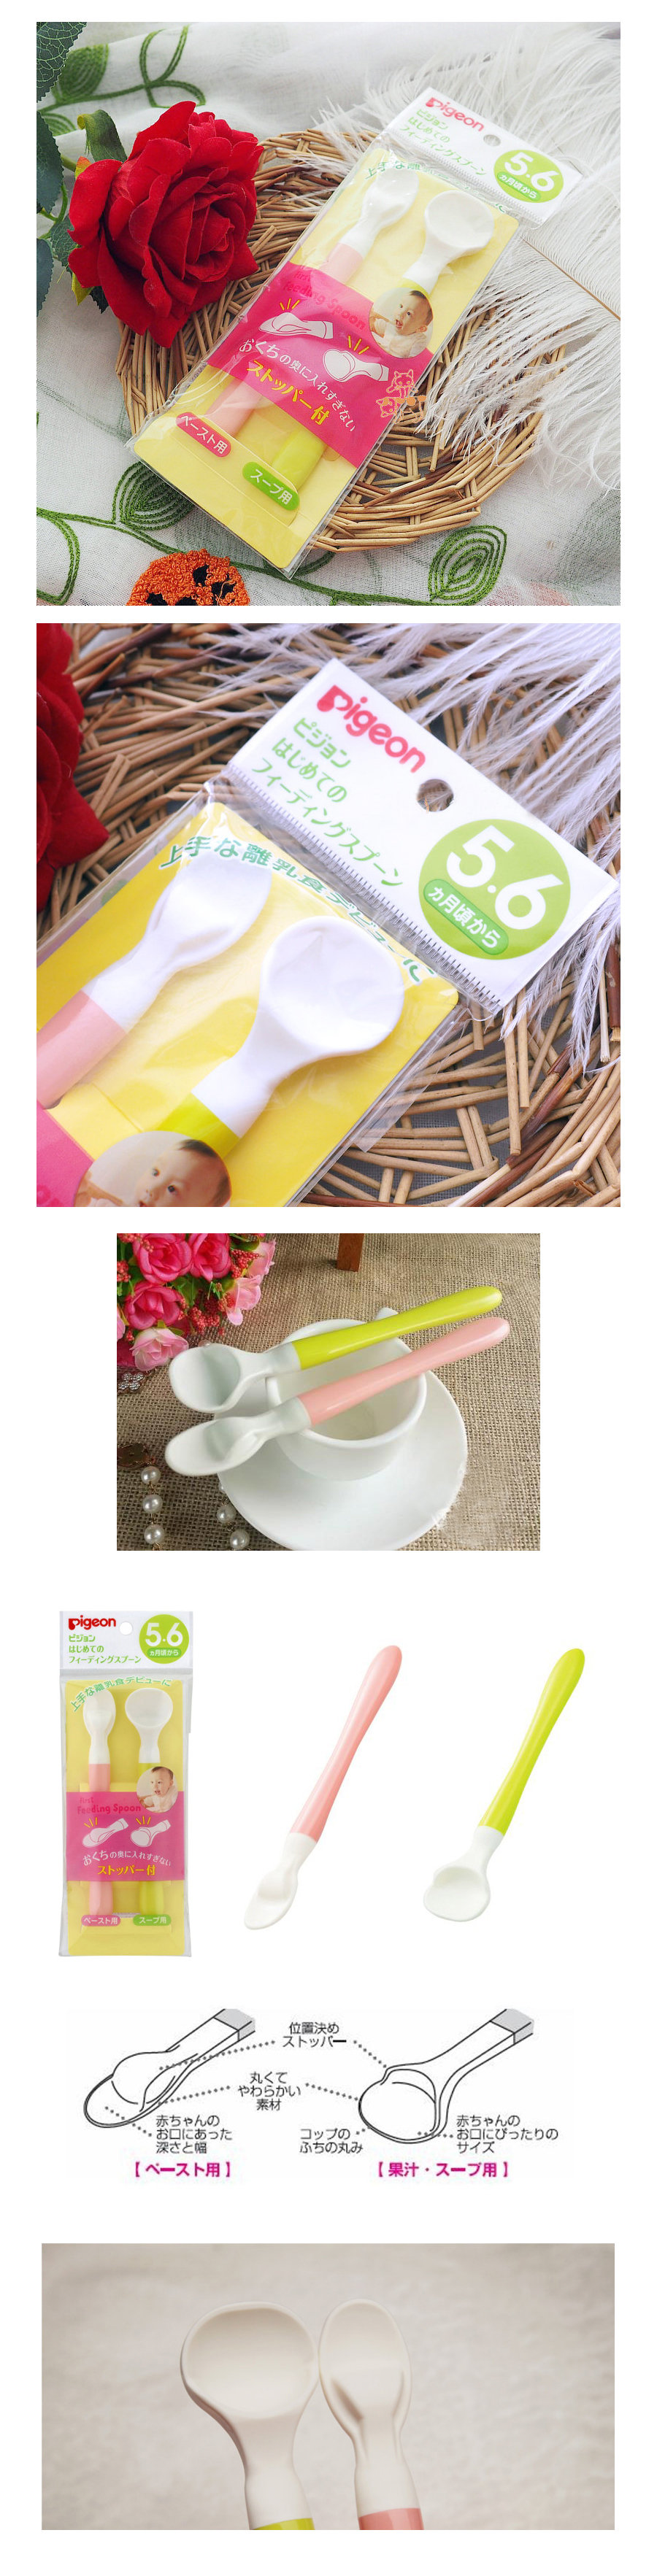 Pigeon Feeding Spoon Set Baby Eats First Of Spoons 1 Hktvmall Online You May Also Like Photo Description